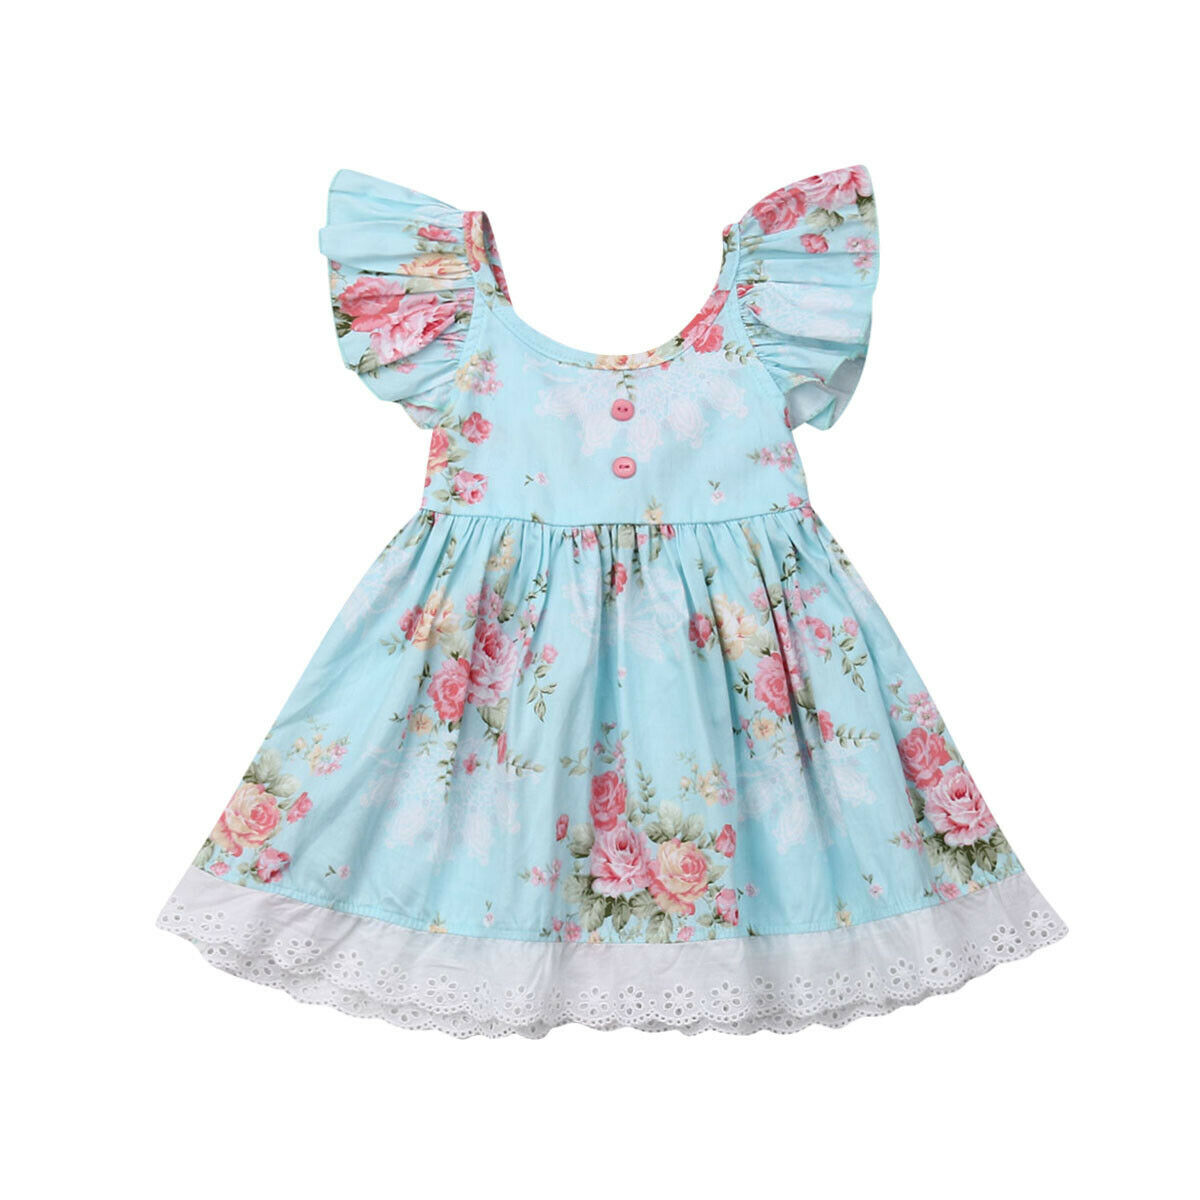 Lace Flower Toddler Baby Girls Dress Summer Tutu Party Wedding Dresses For Baby Girls Clothing